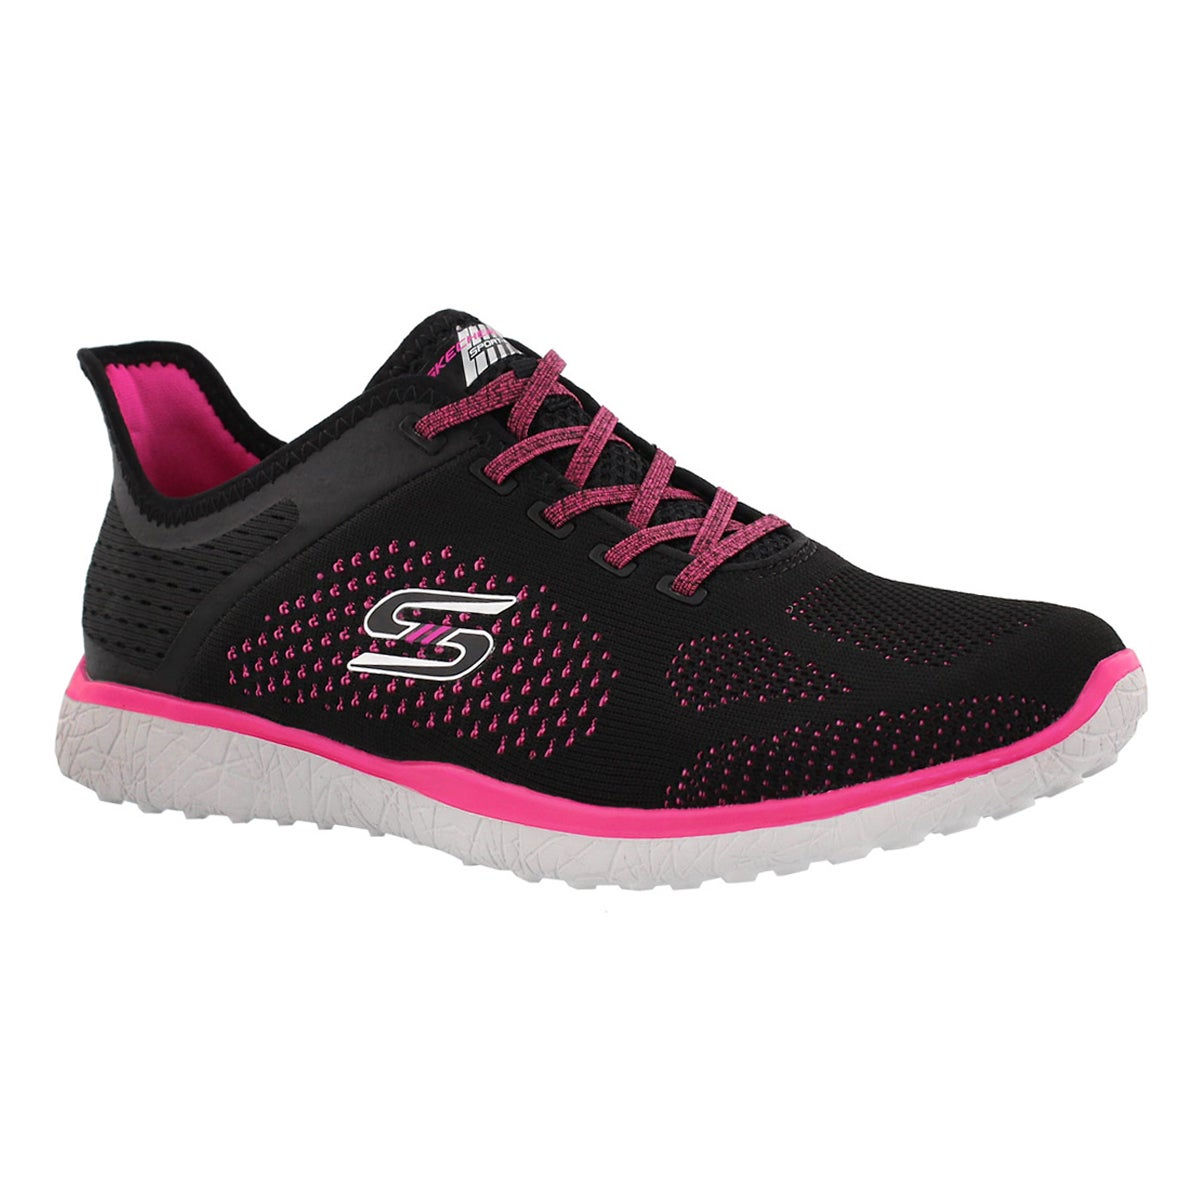 Women's MICROBURST SUPERSONIC blk/pnk sneakers